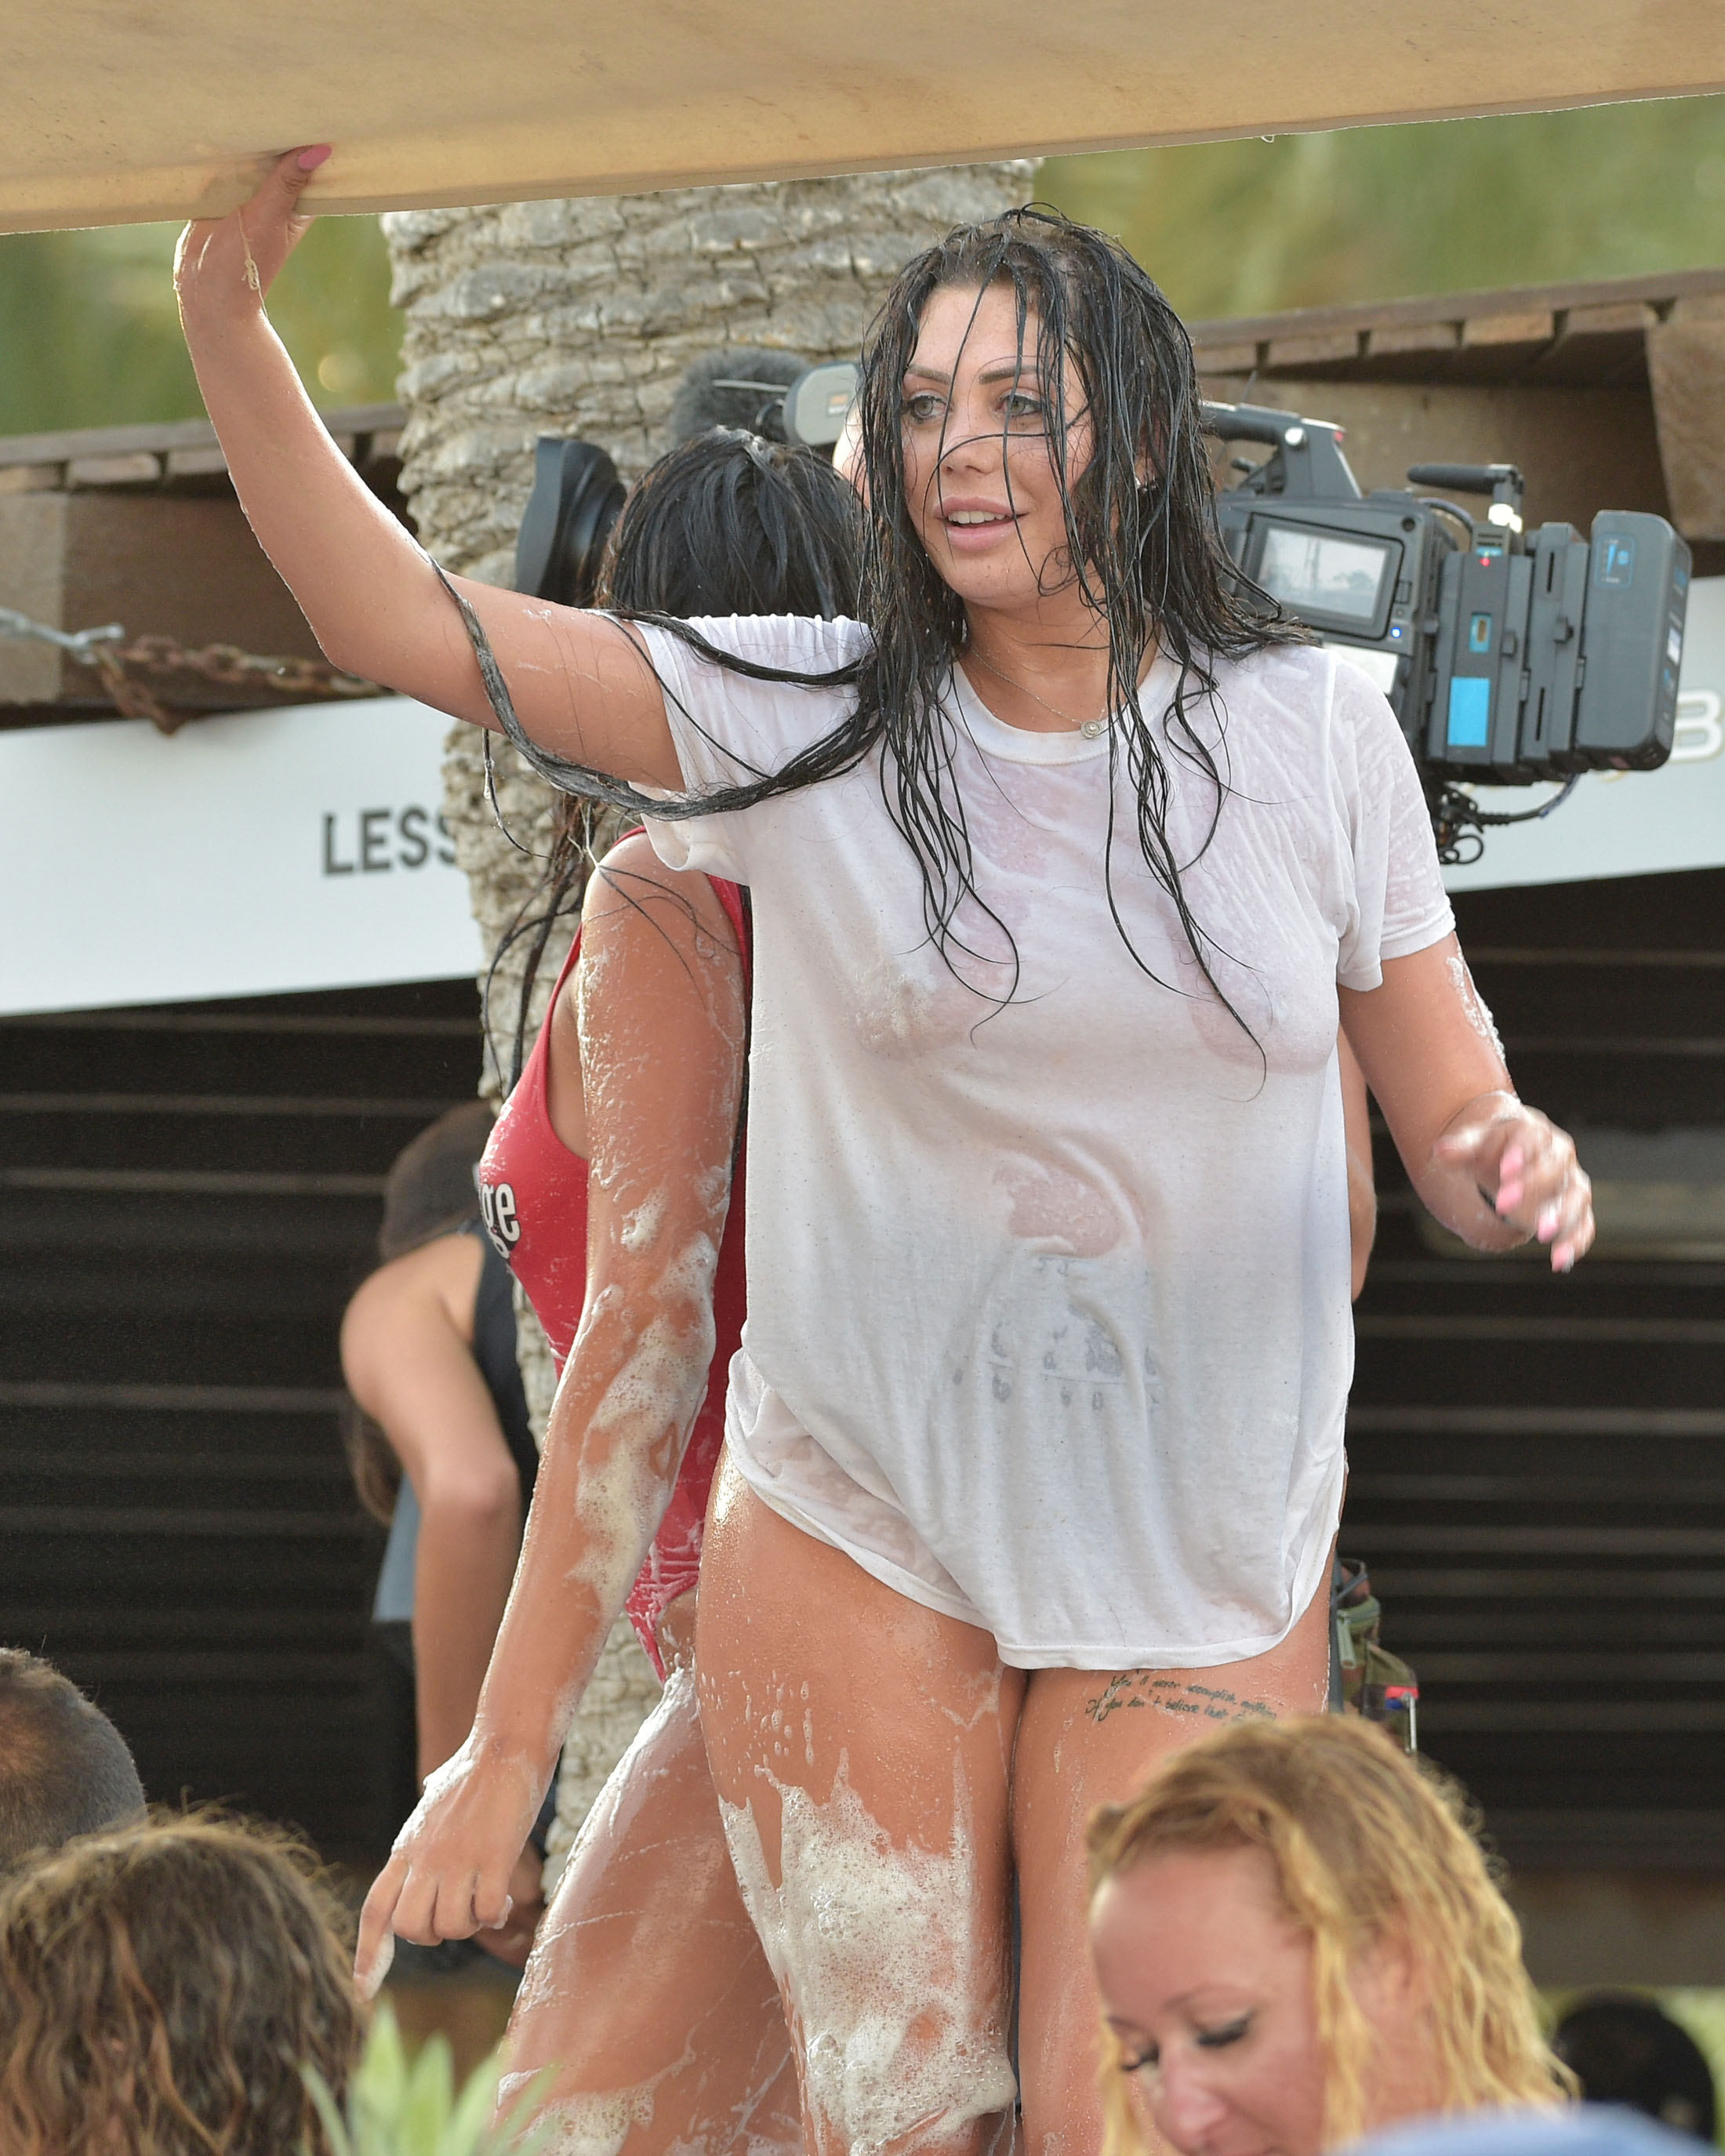 Wet Tshirt Contest Pic : tshirt, contest, Marnie, Simpson, Chloe, Ferry, Expose, Themselves, T-shirt, Competition, Party